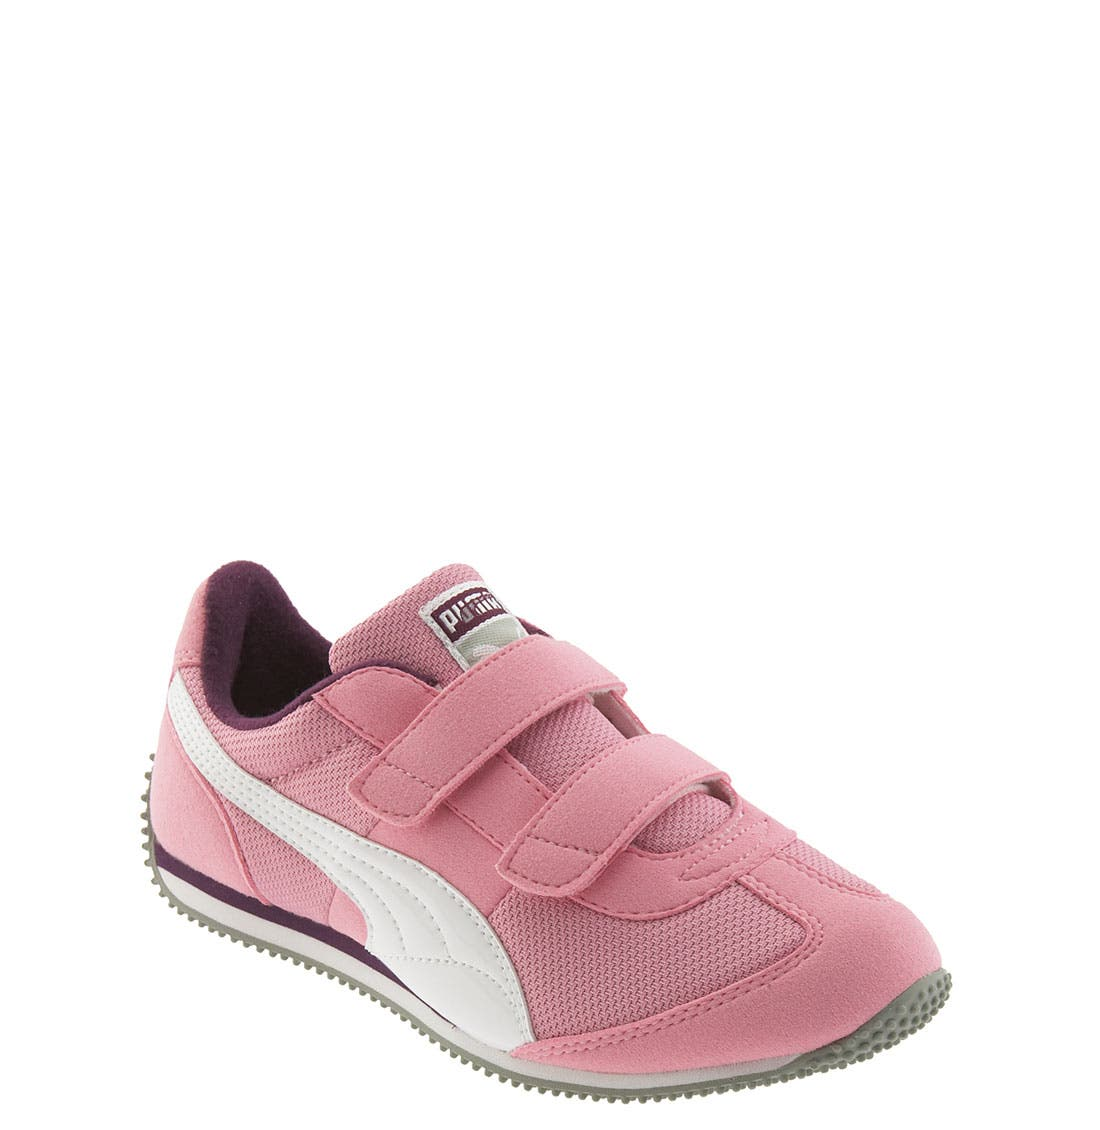 Alternate Image 1 Selected - Puma 'Speeder Mesh' Sneaker (Baby, Walker, Toddler & Little Kid)